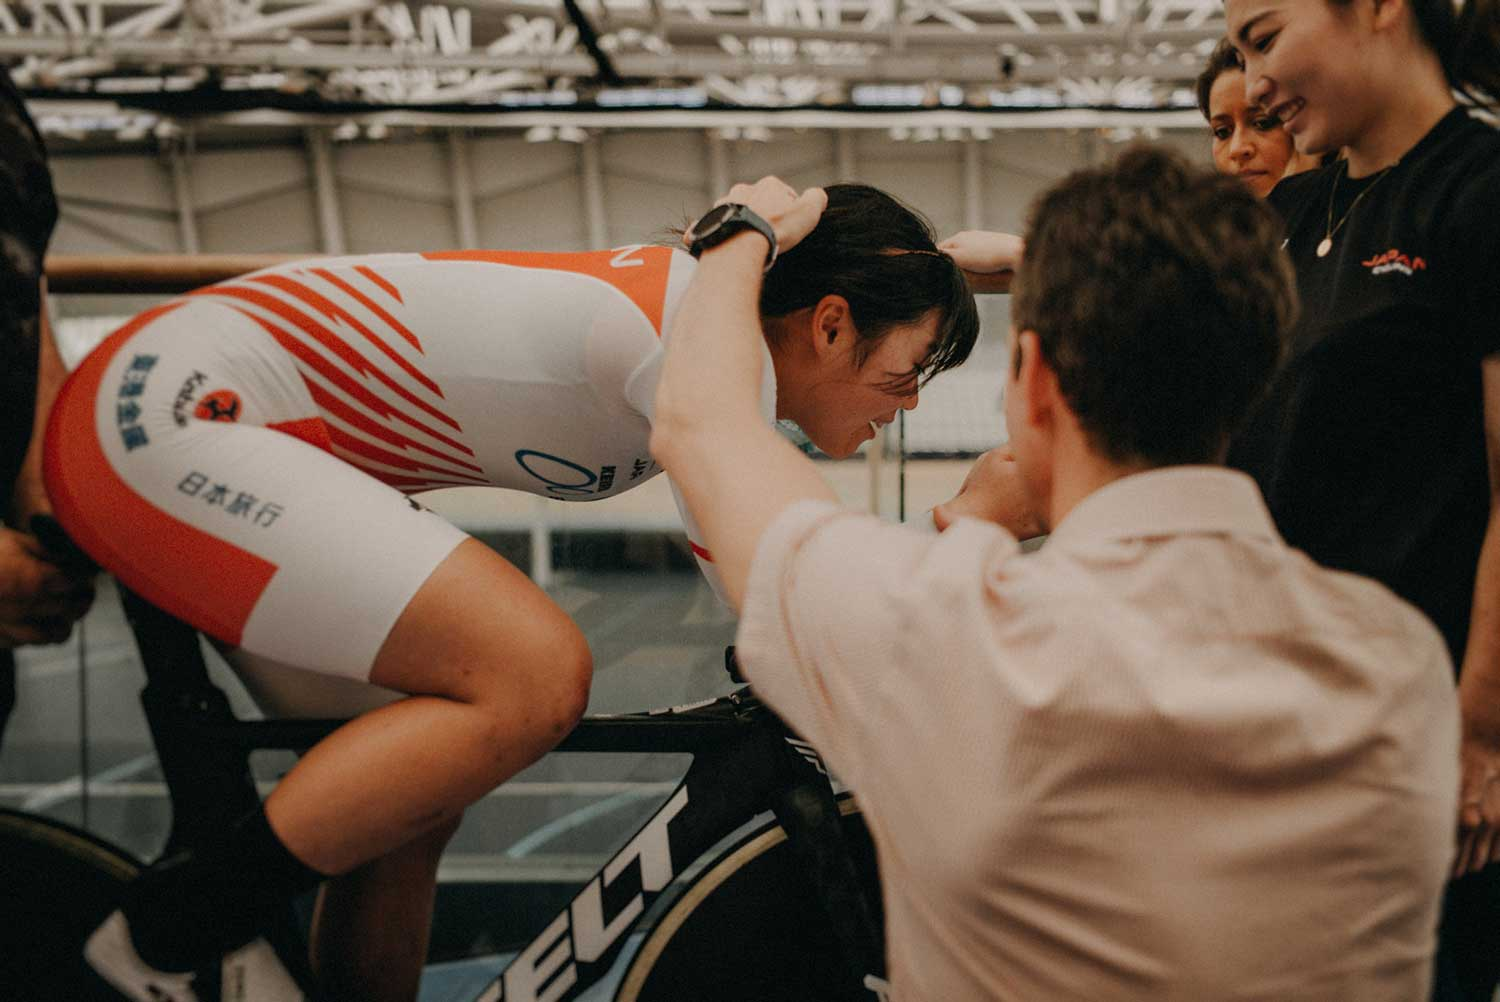 Cycling biomechanist adjusts body position of Japanese track cyclist during training session at velodrome